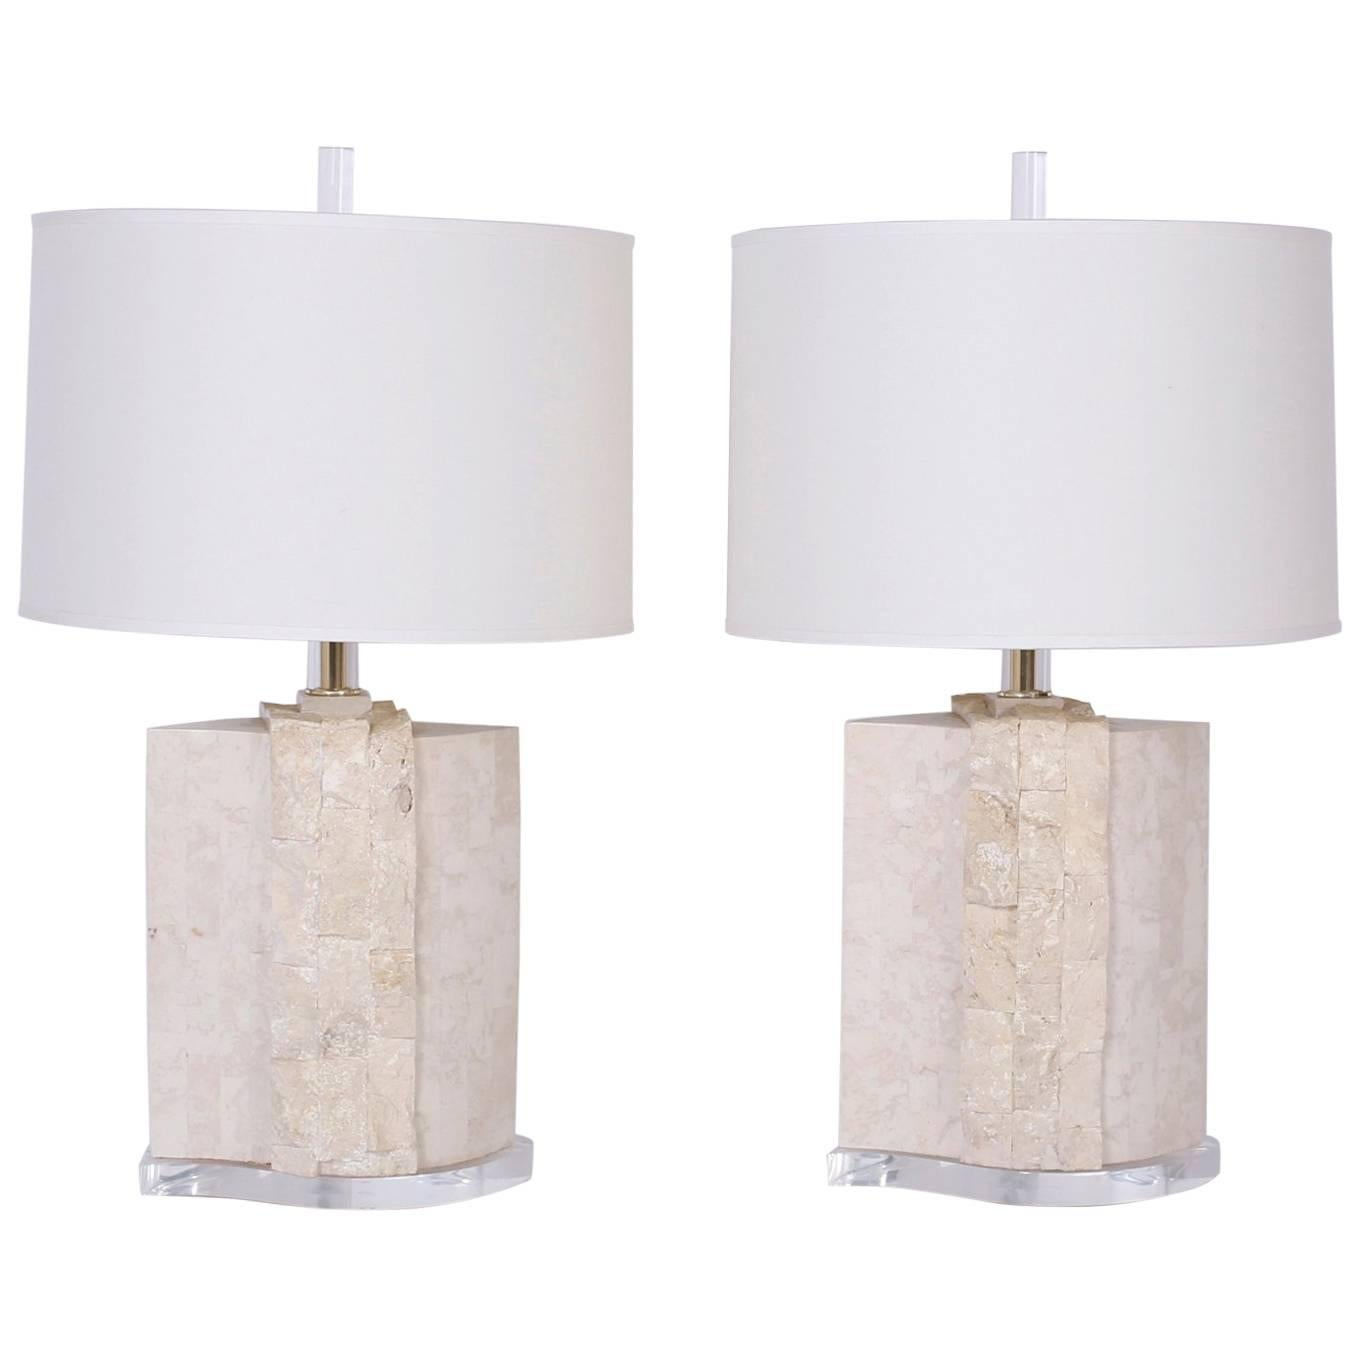 Pair of Stone Table Lamps